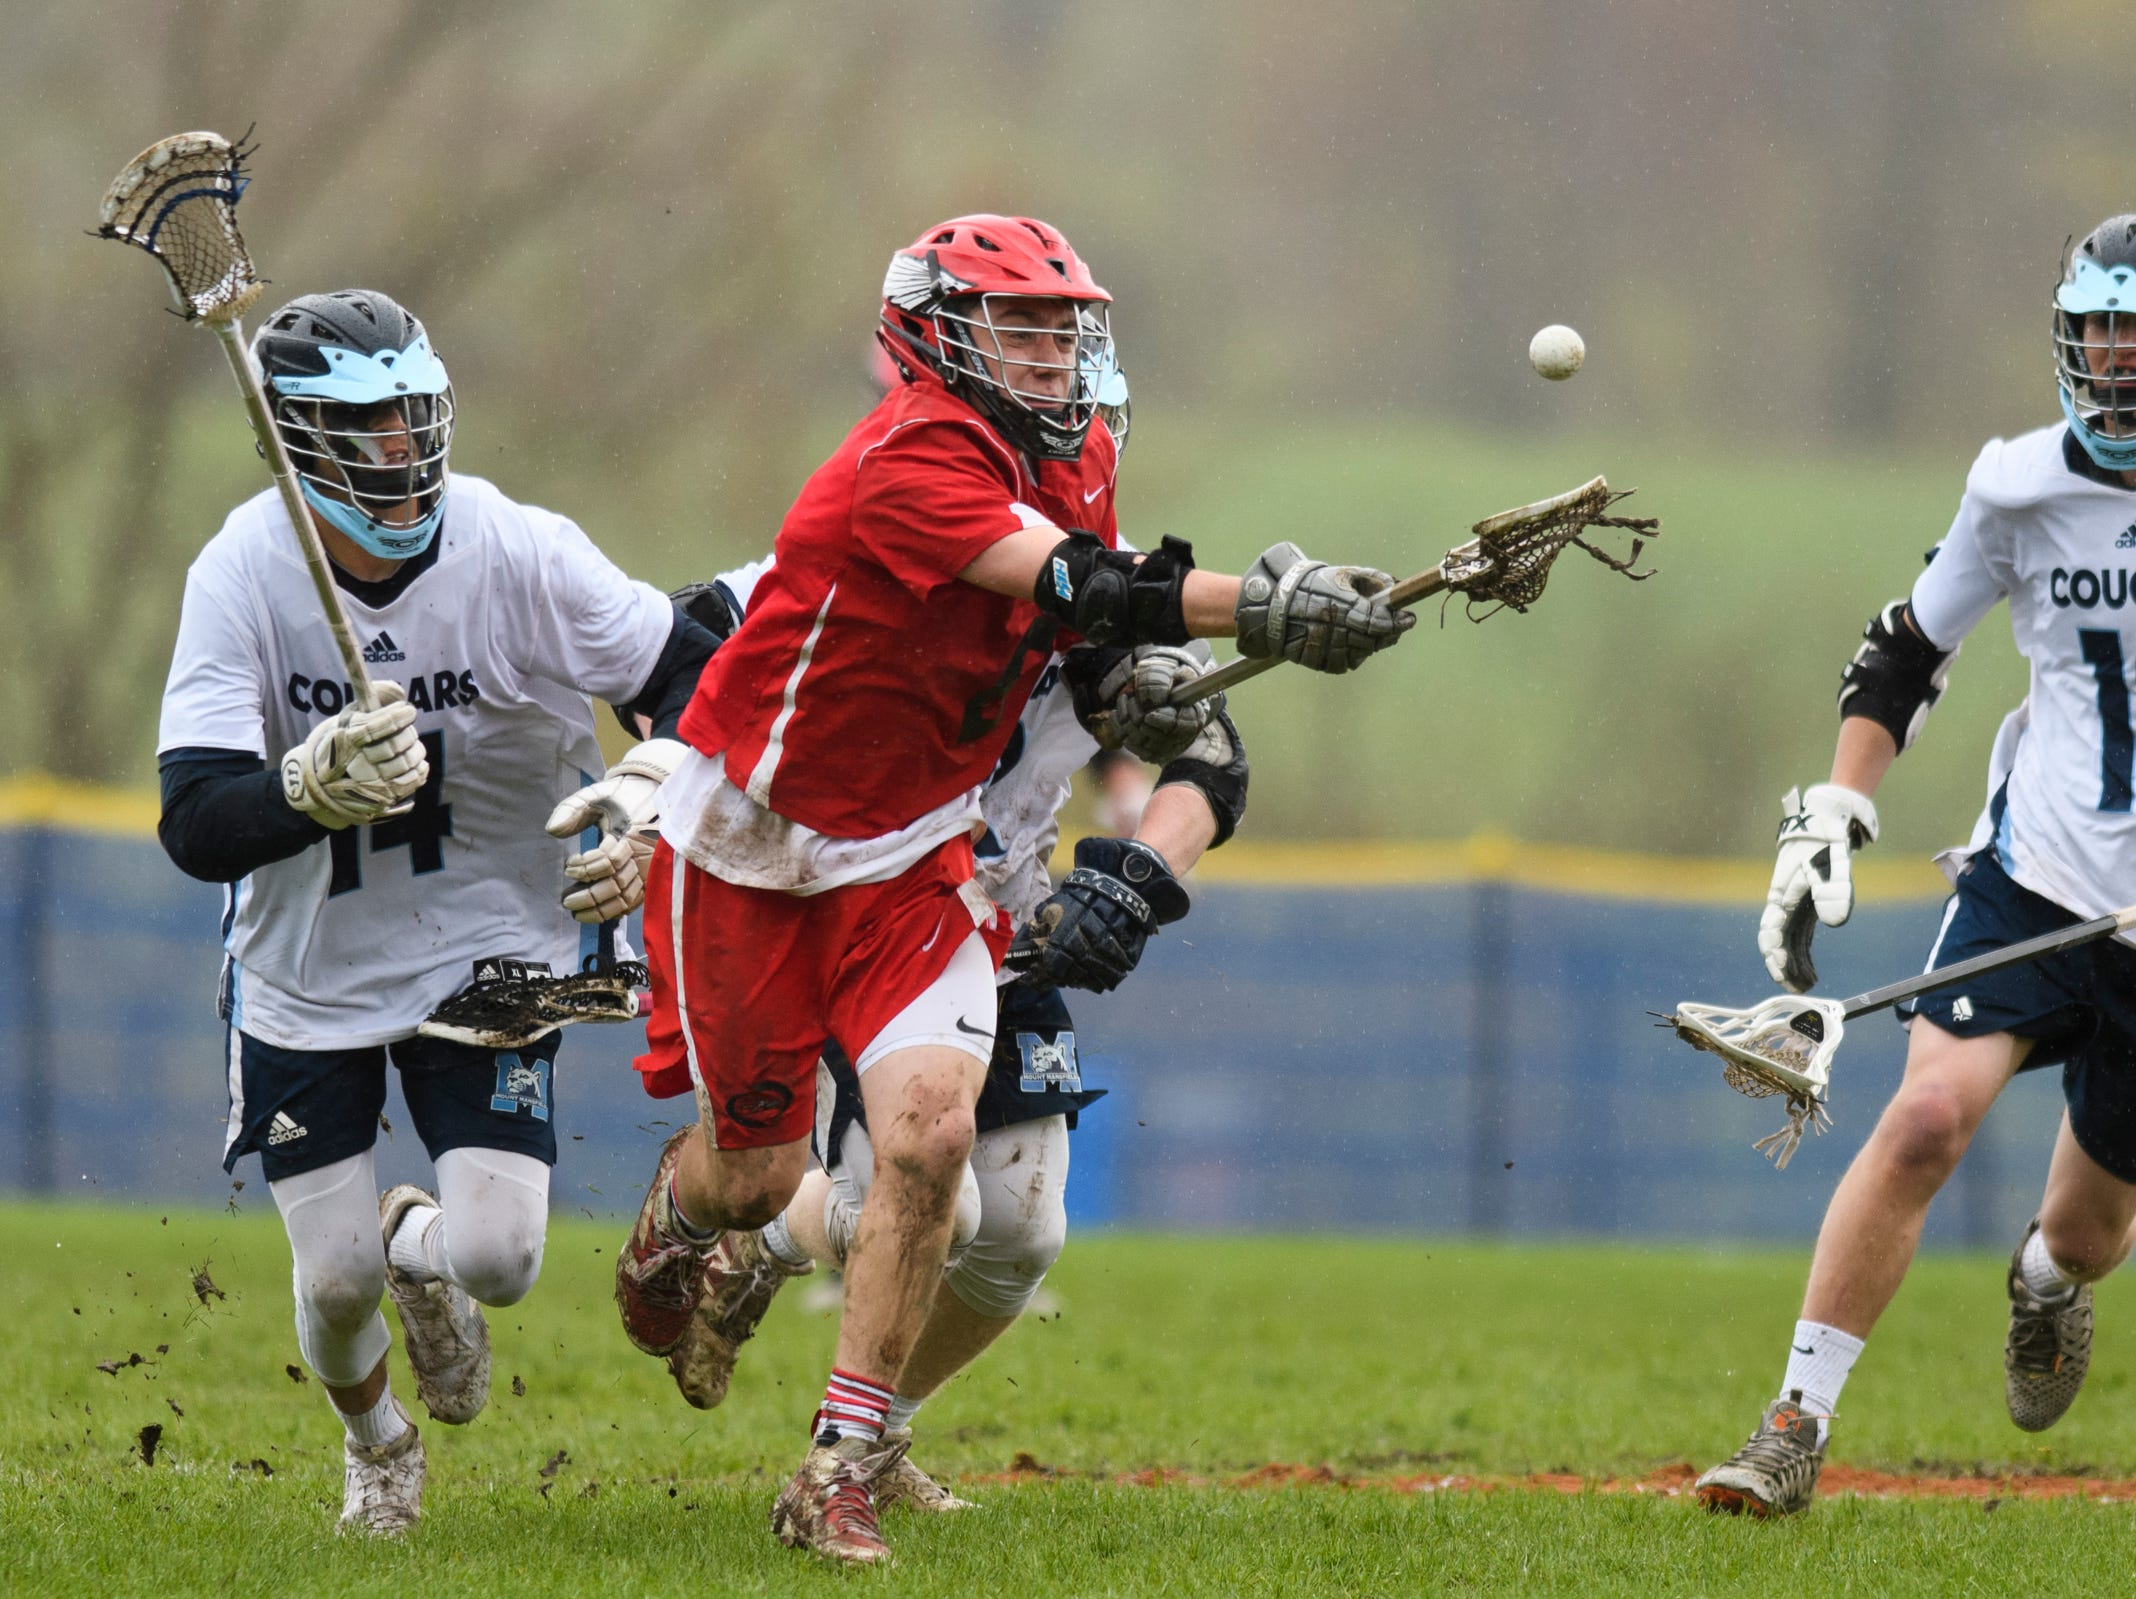 CVU's Nikos Carroll (6) scoops up the ball during the boys lacrosse game between the Champlain Valley Union Redhawks and the Mount Mansfield Cougars at MMU High School on Tuesday afternoon May 14, 2019 in Jericho, Vermont.